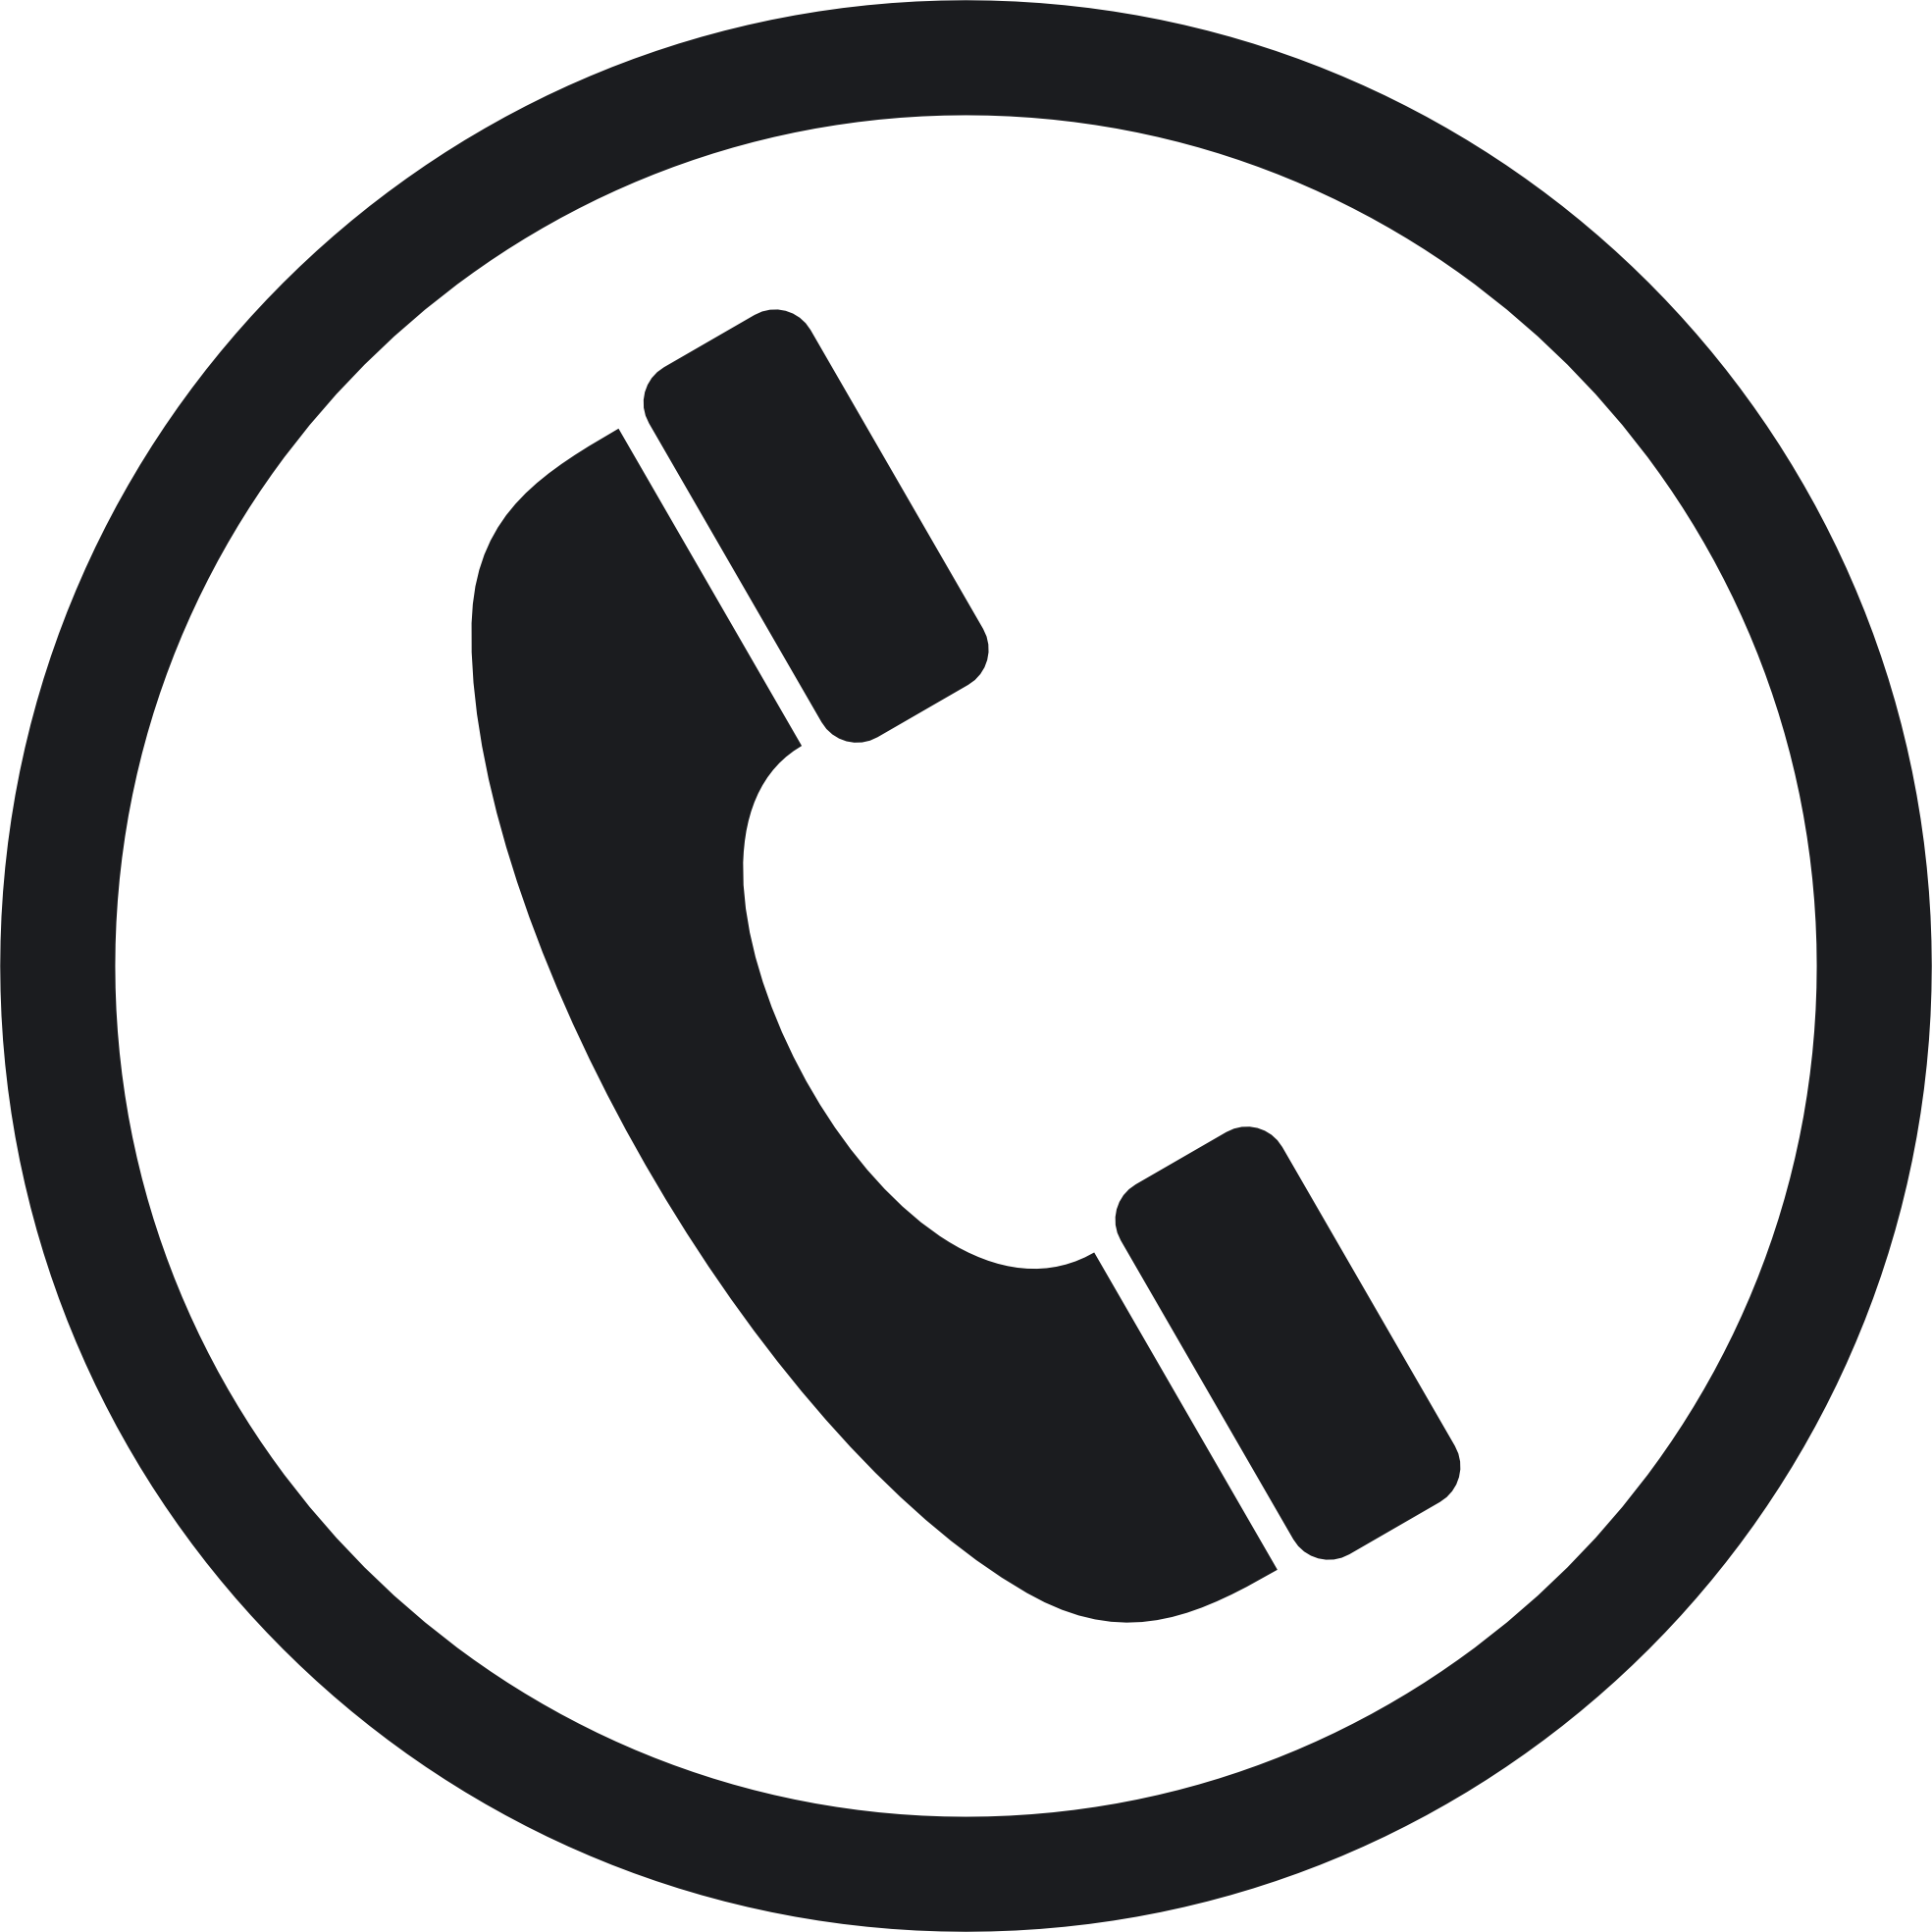 red phone png image